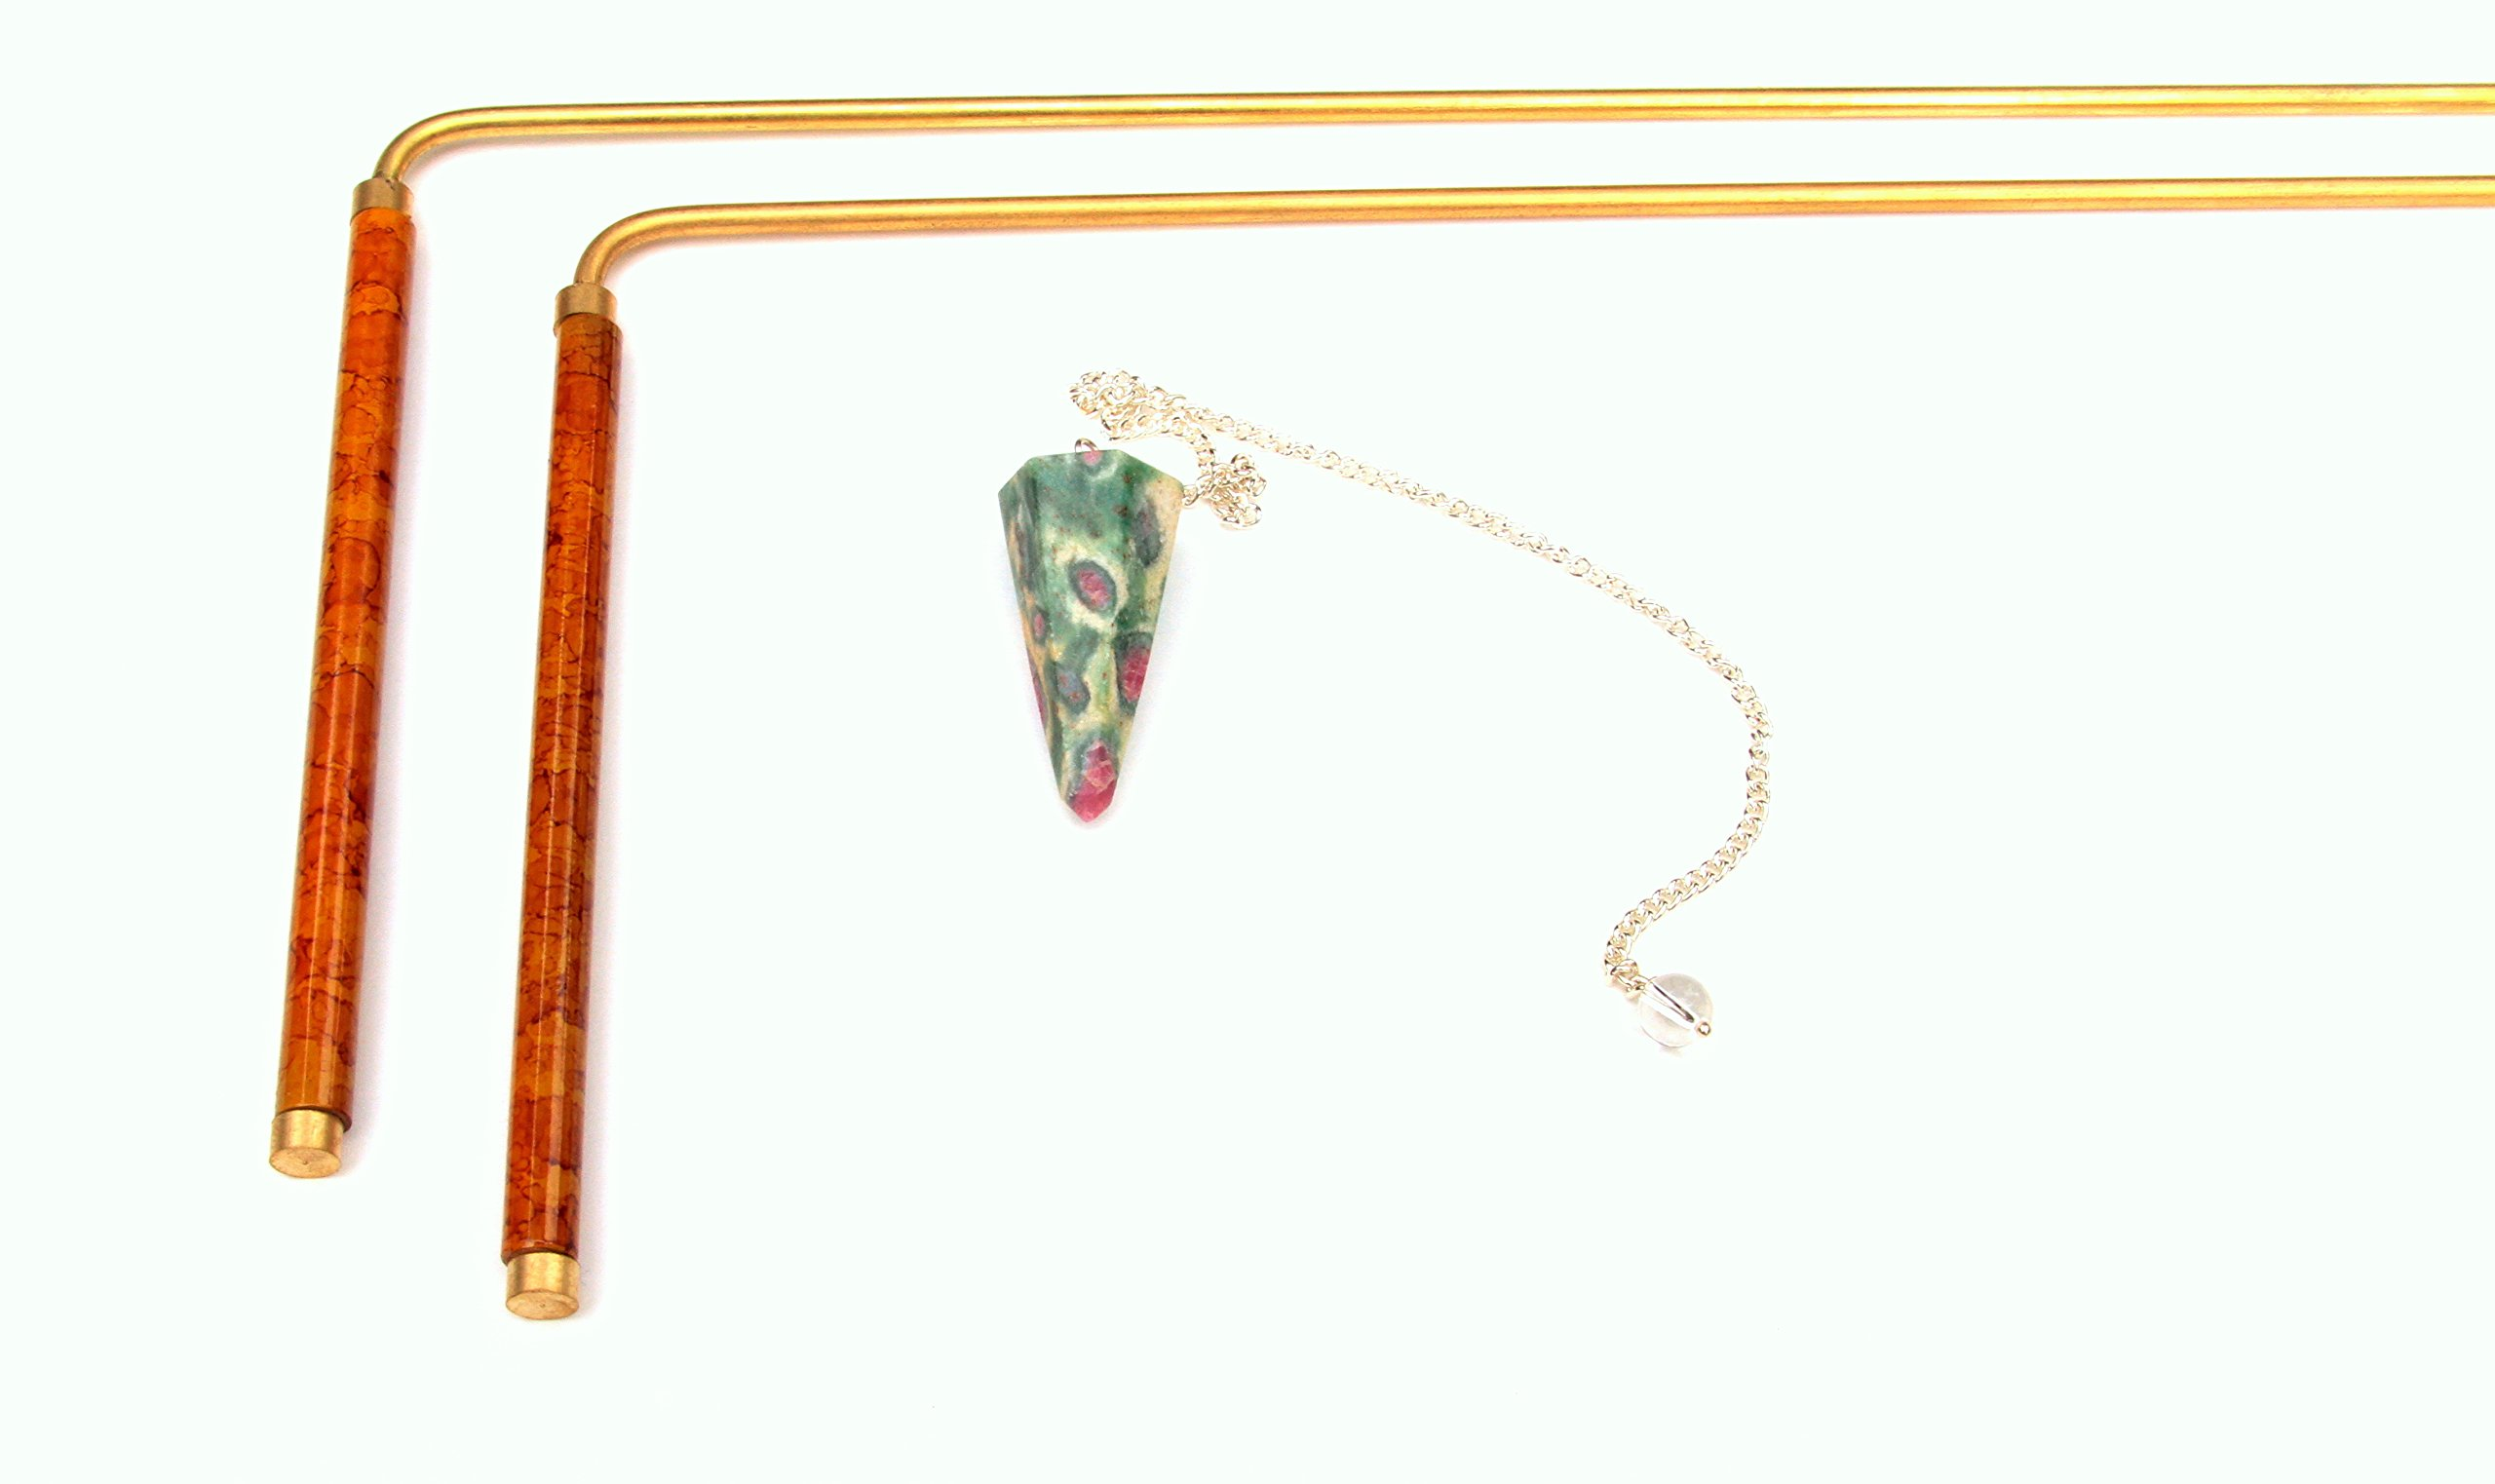 Intuitive Doodlebug Dowsing Rod Set includes 2 Divining Rods with Enamel Coated Copper Handles, Ruby Zoisite Pendulum known to Enhance Psychic Abilities, both great tools to Explore the Art of Dowsing